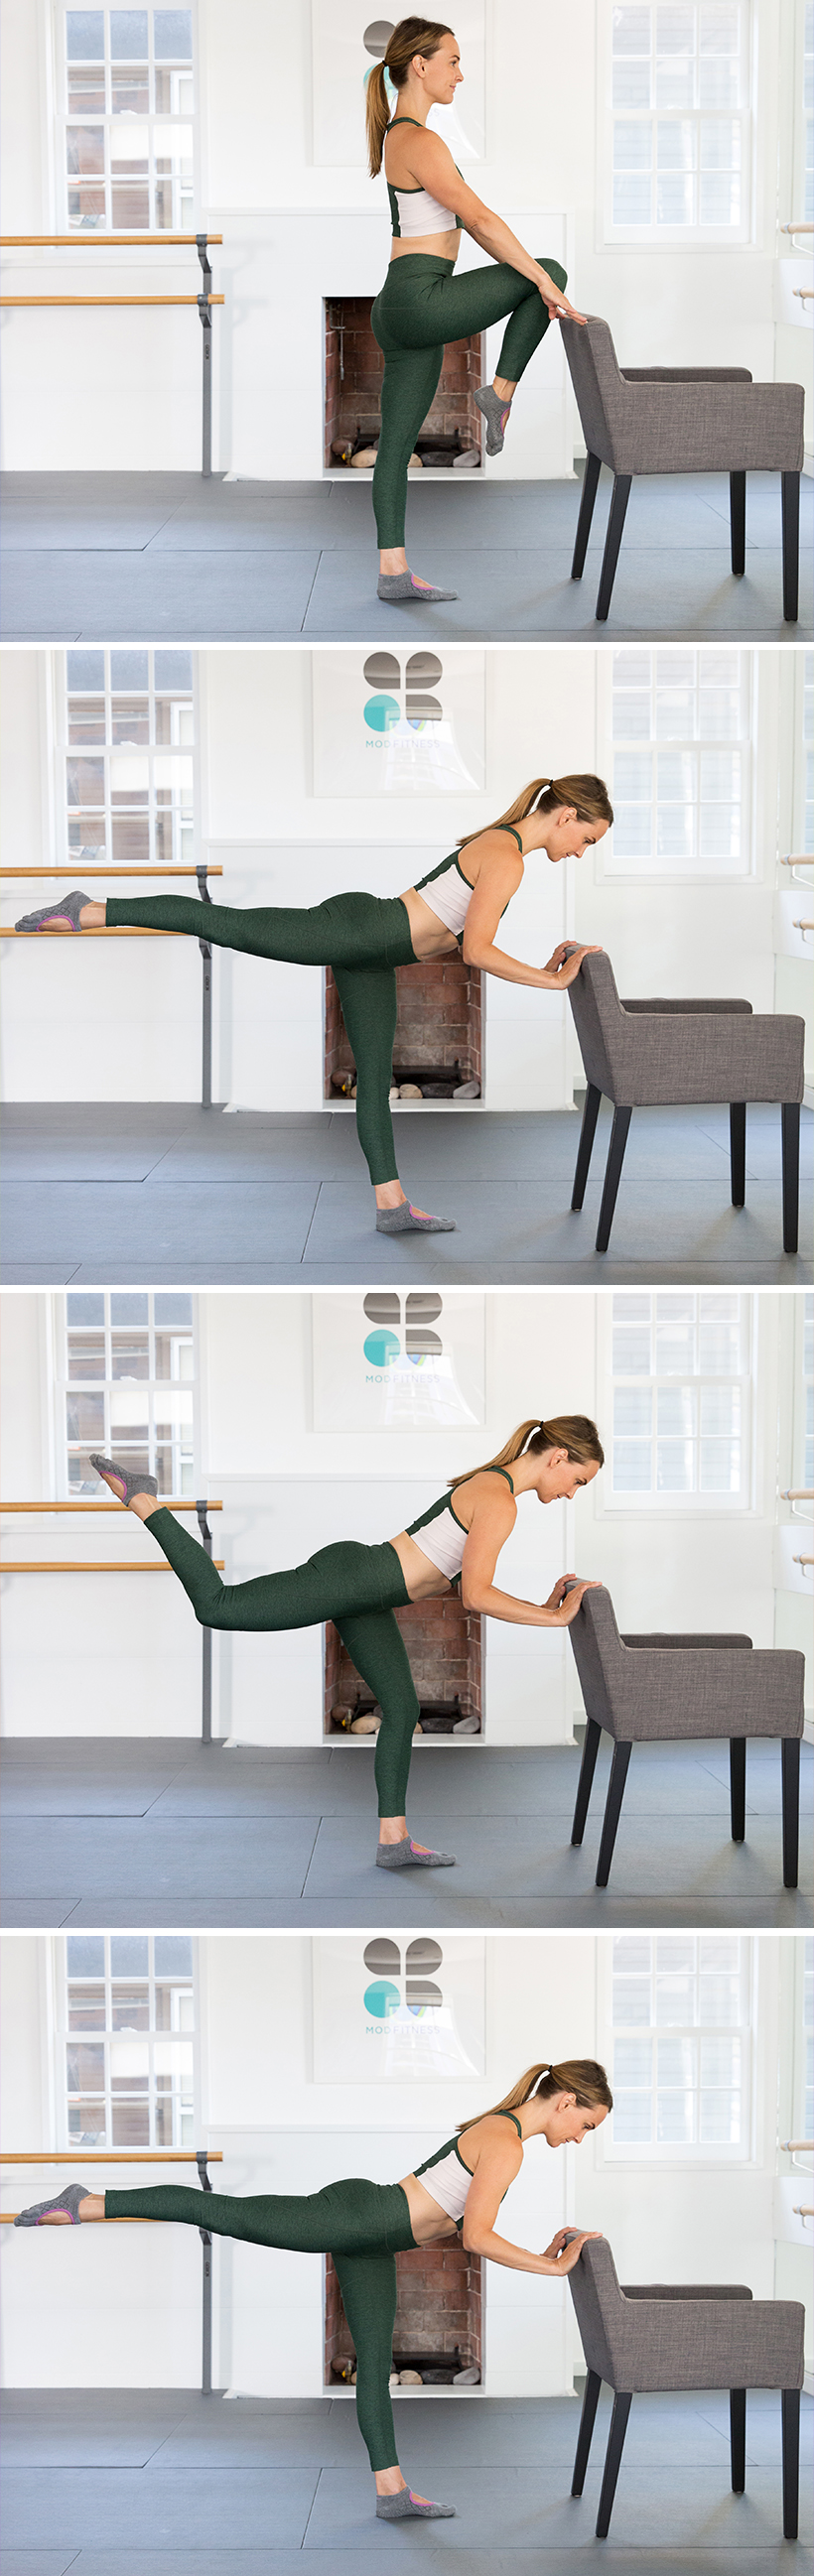 modified push up with a chair - totally gonna try this to work out my butt!